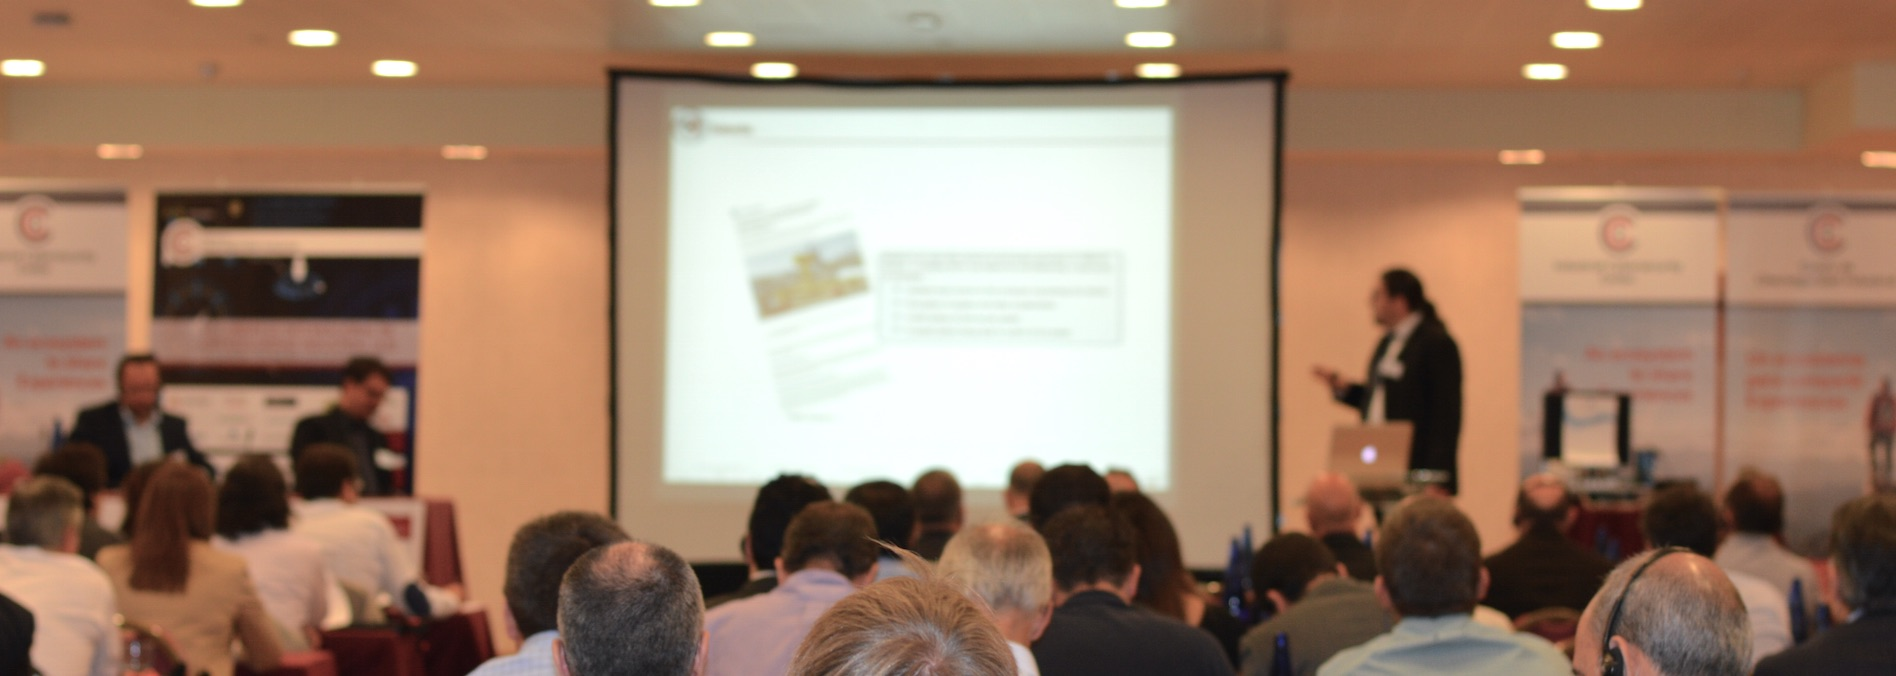 CCI holds its VII International Congress of Industrial Cybersecurity with major European participation, 5 and 6 October